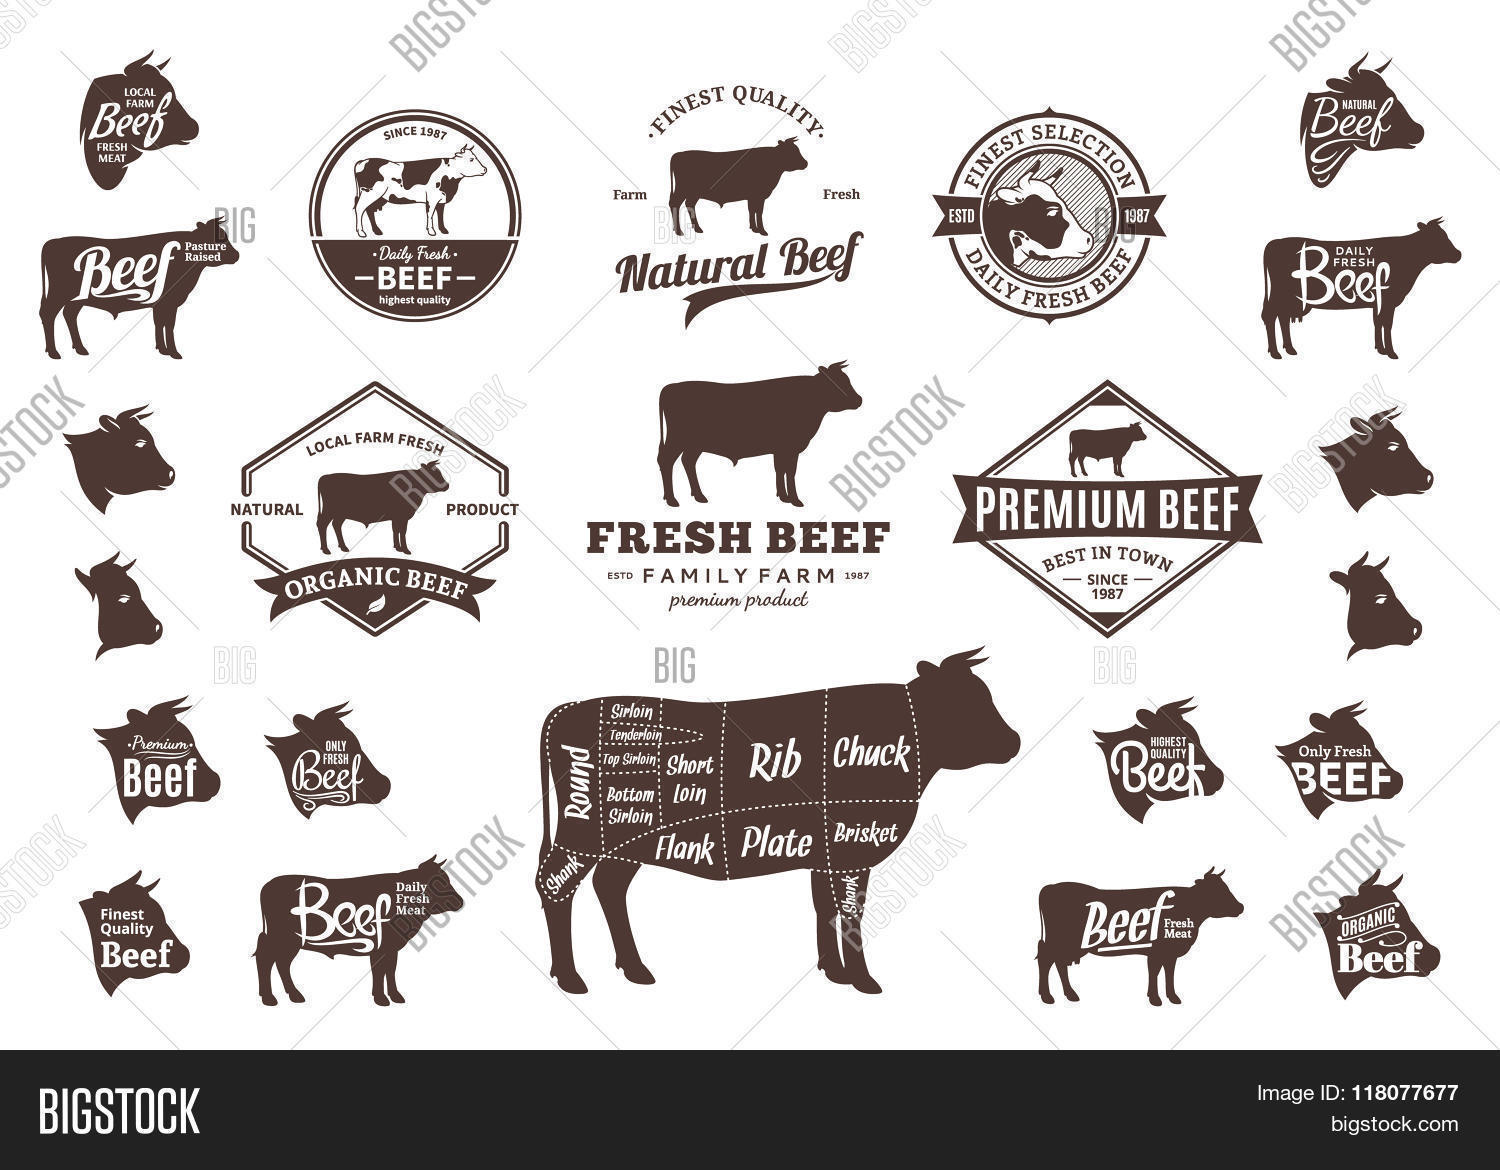 vector beef logo icons charts and design elements stock vector stock photos bigstock. Black Bedroom Furniture Sets. Home Design Ideas